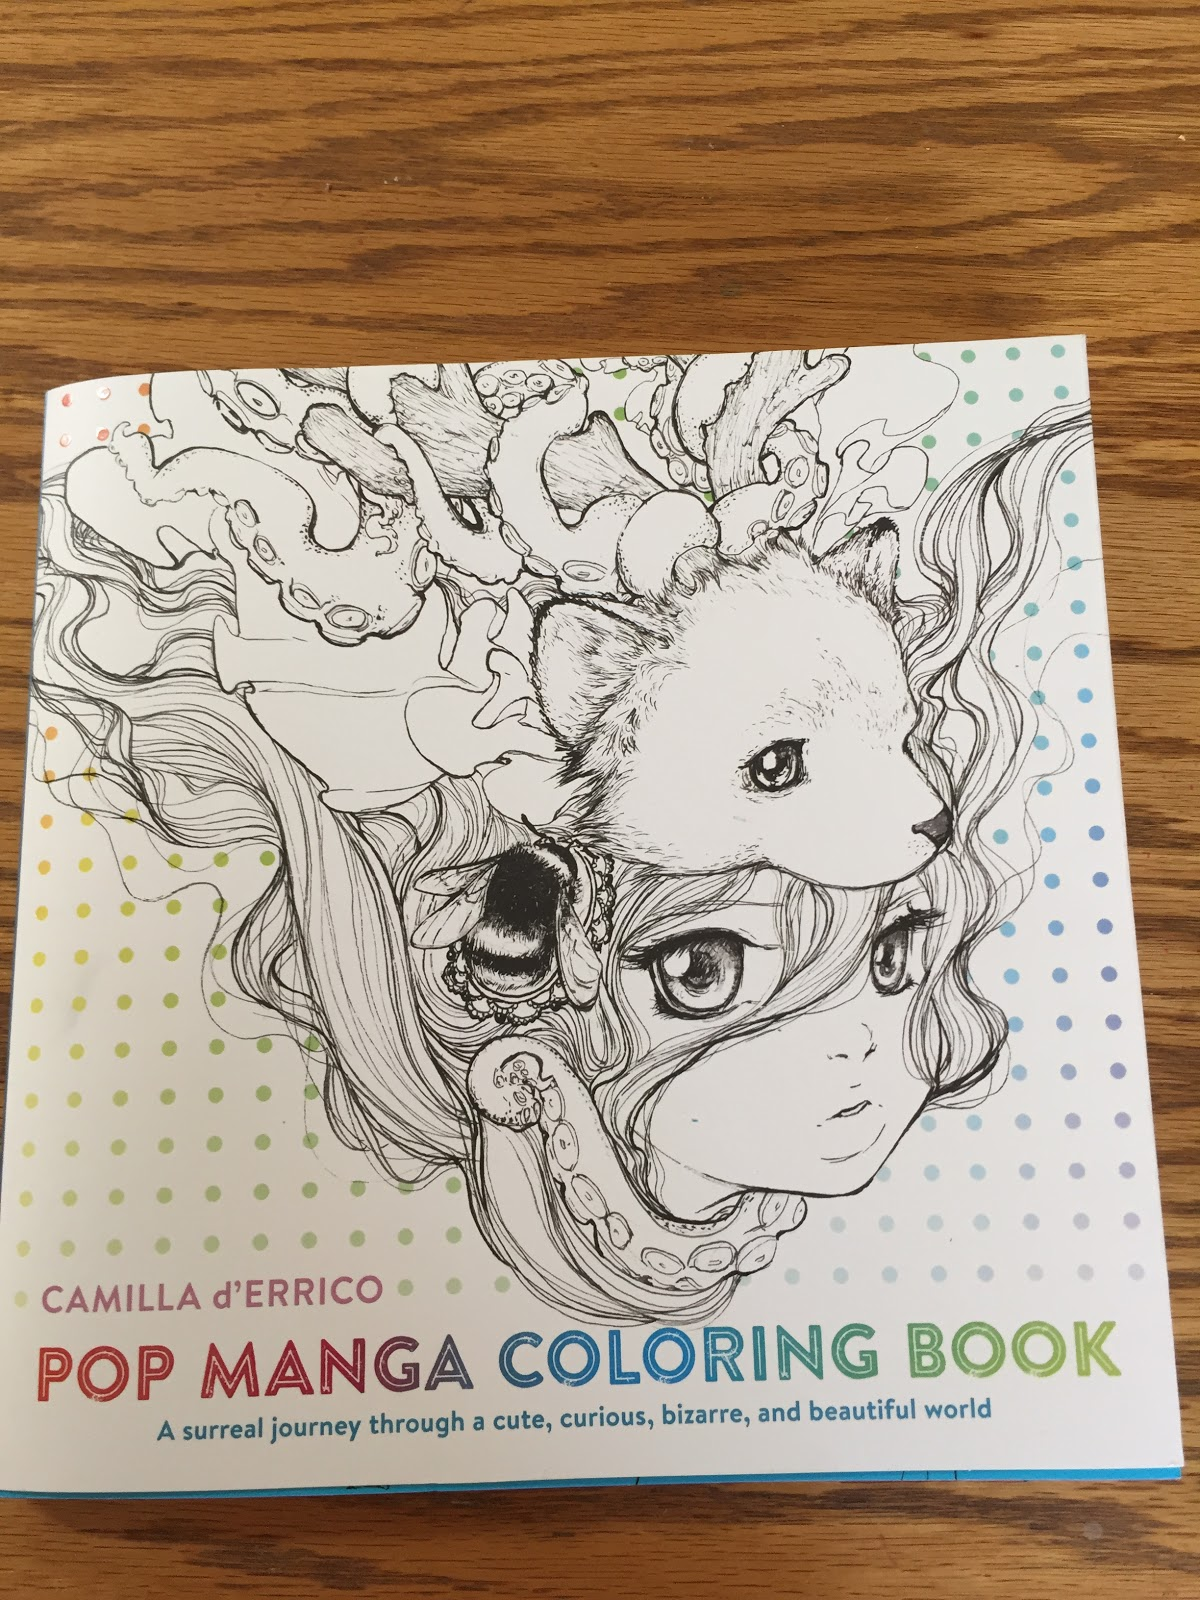 Pop Manga Coloring Book By Camilla DErrico Genre Books For Adults And So Much More 80 Pages Count Them Freaking 10 X